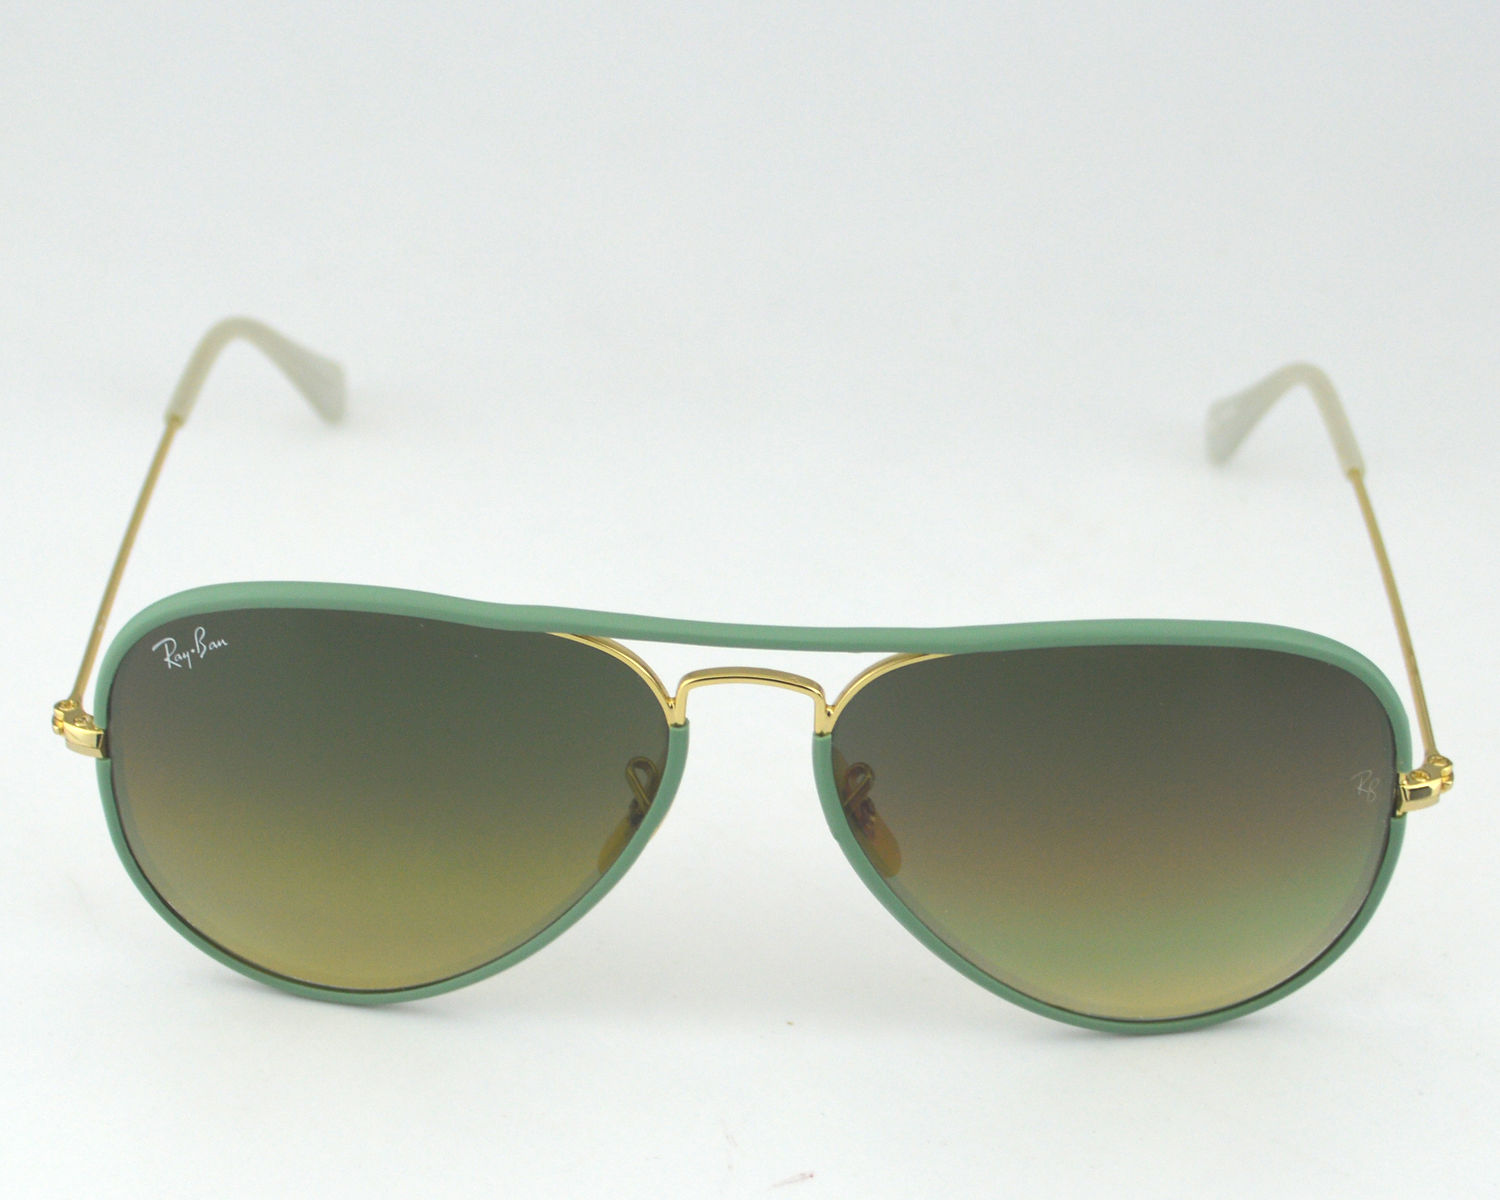 b95d7e0b6 ... italy ray ban rb 3025jm aviator full color 001 3m green gradient lens  unisex sunglasses 58mm